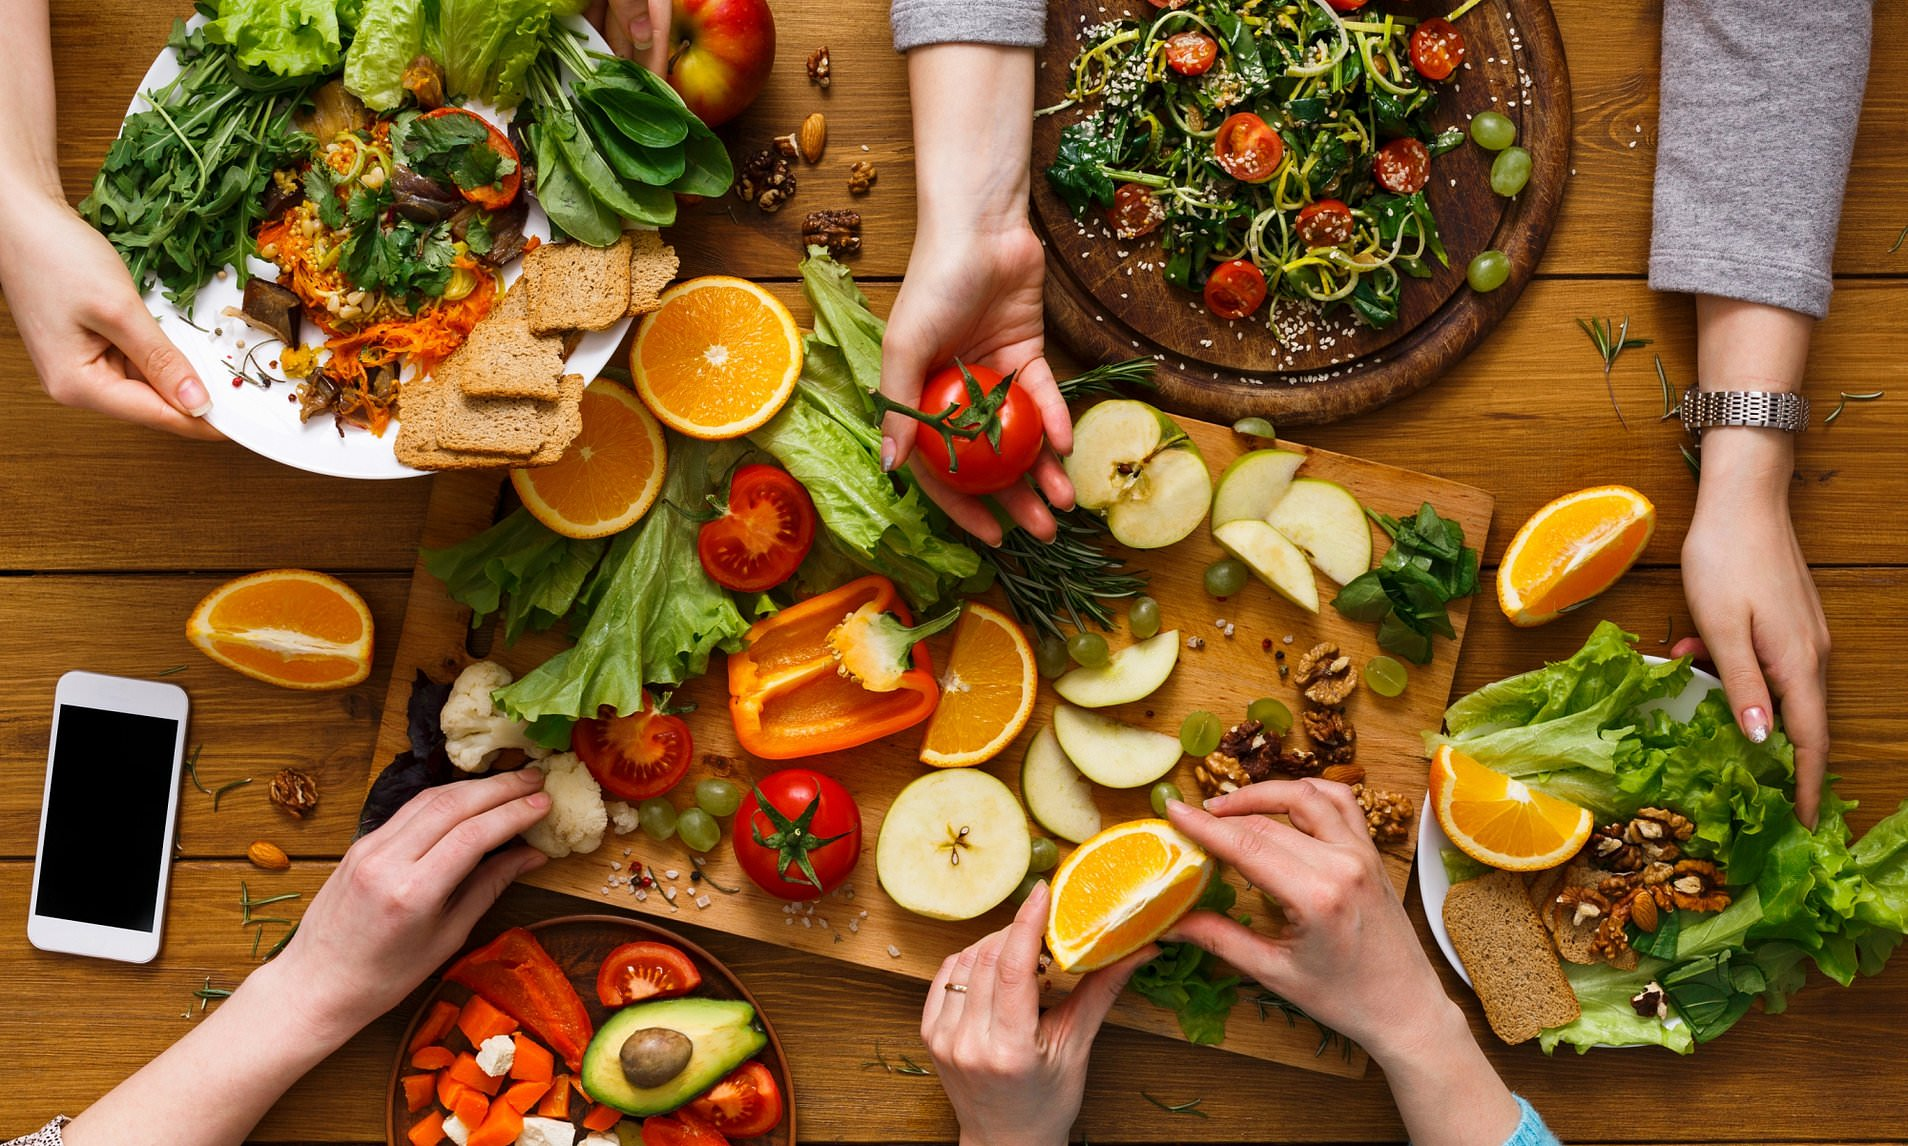 How Turning to Vegan Could Help the Planet?